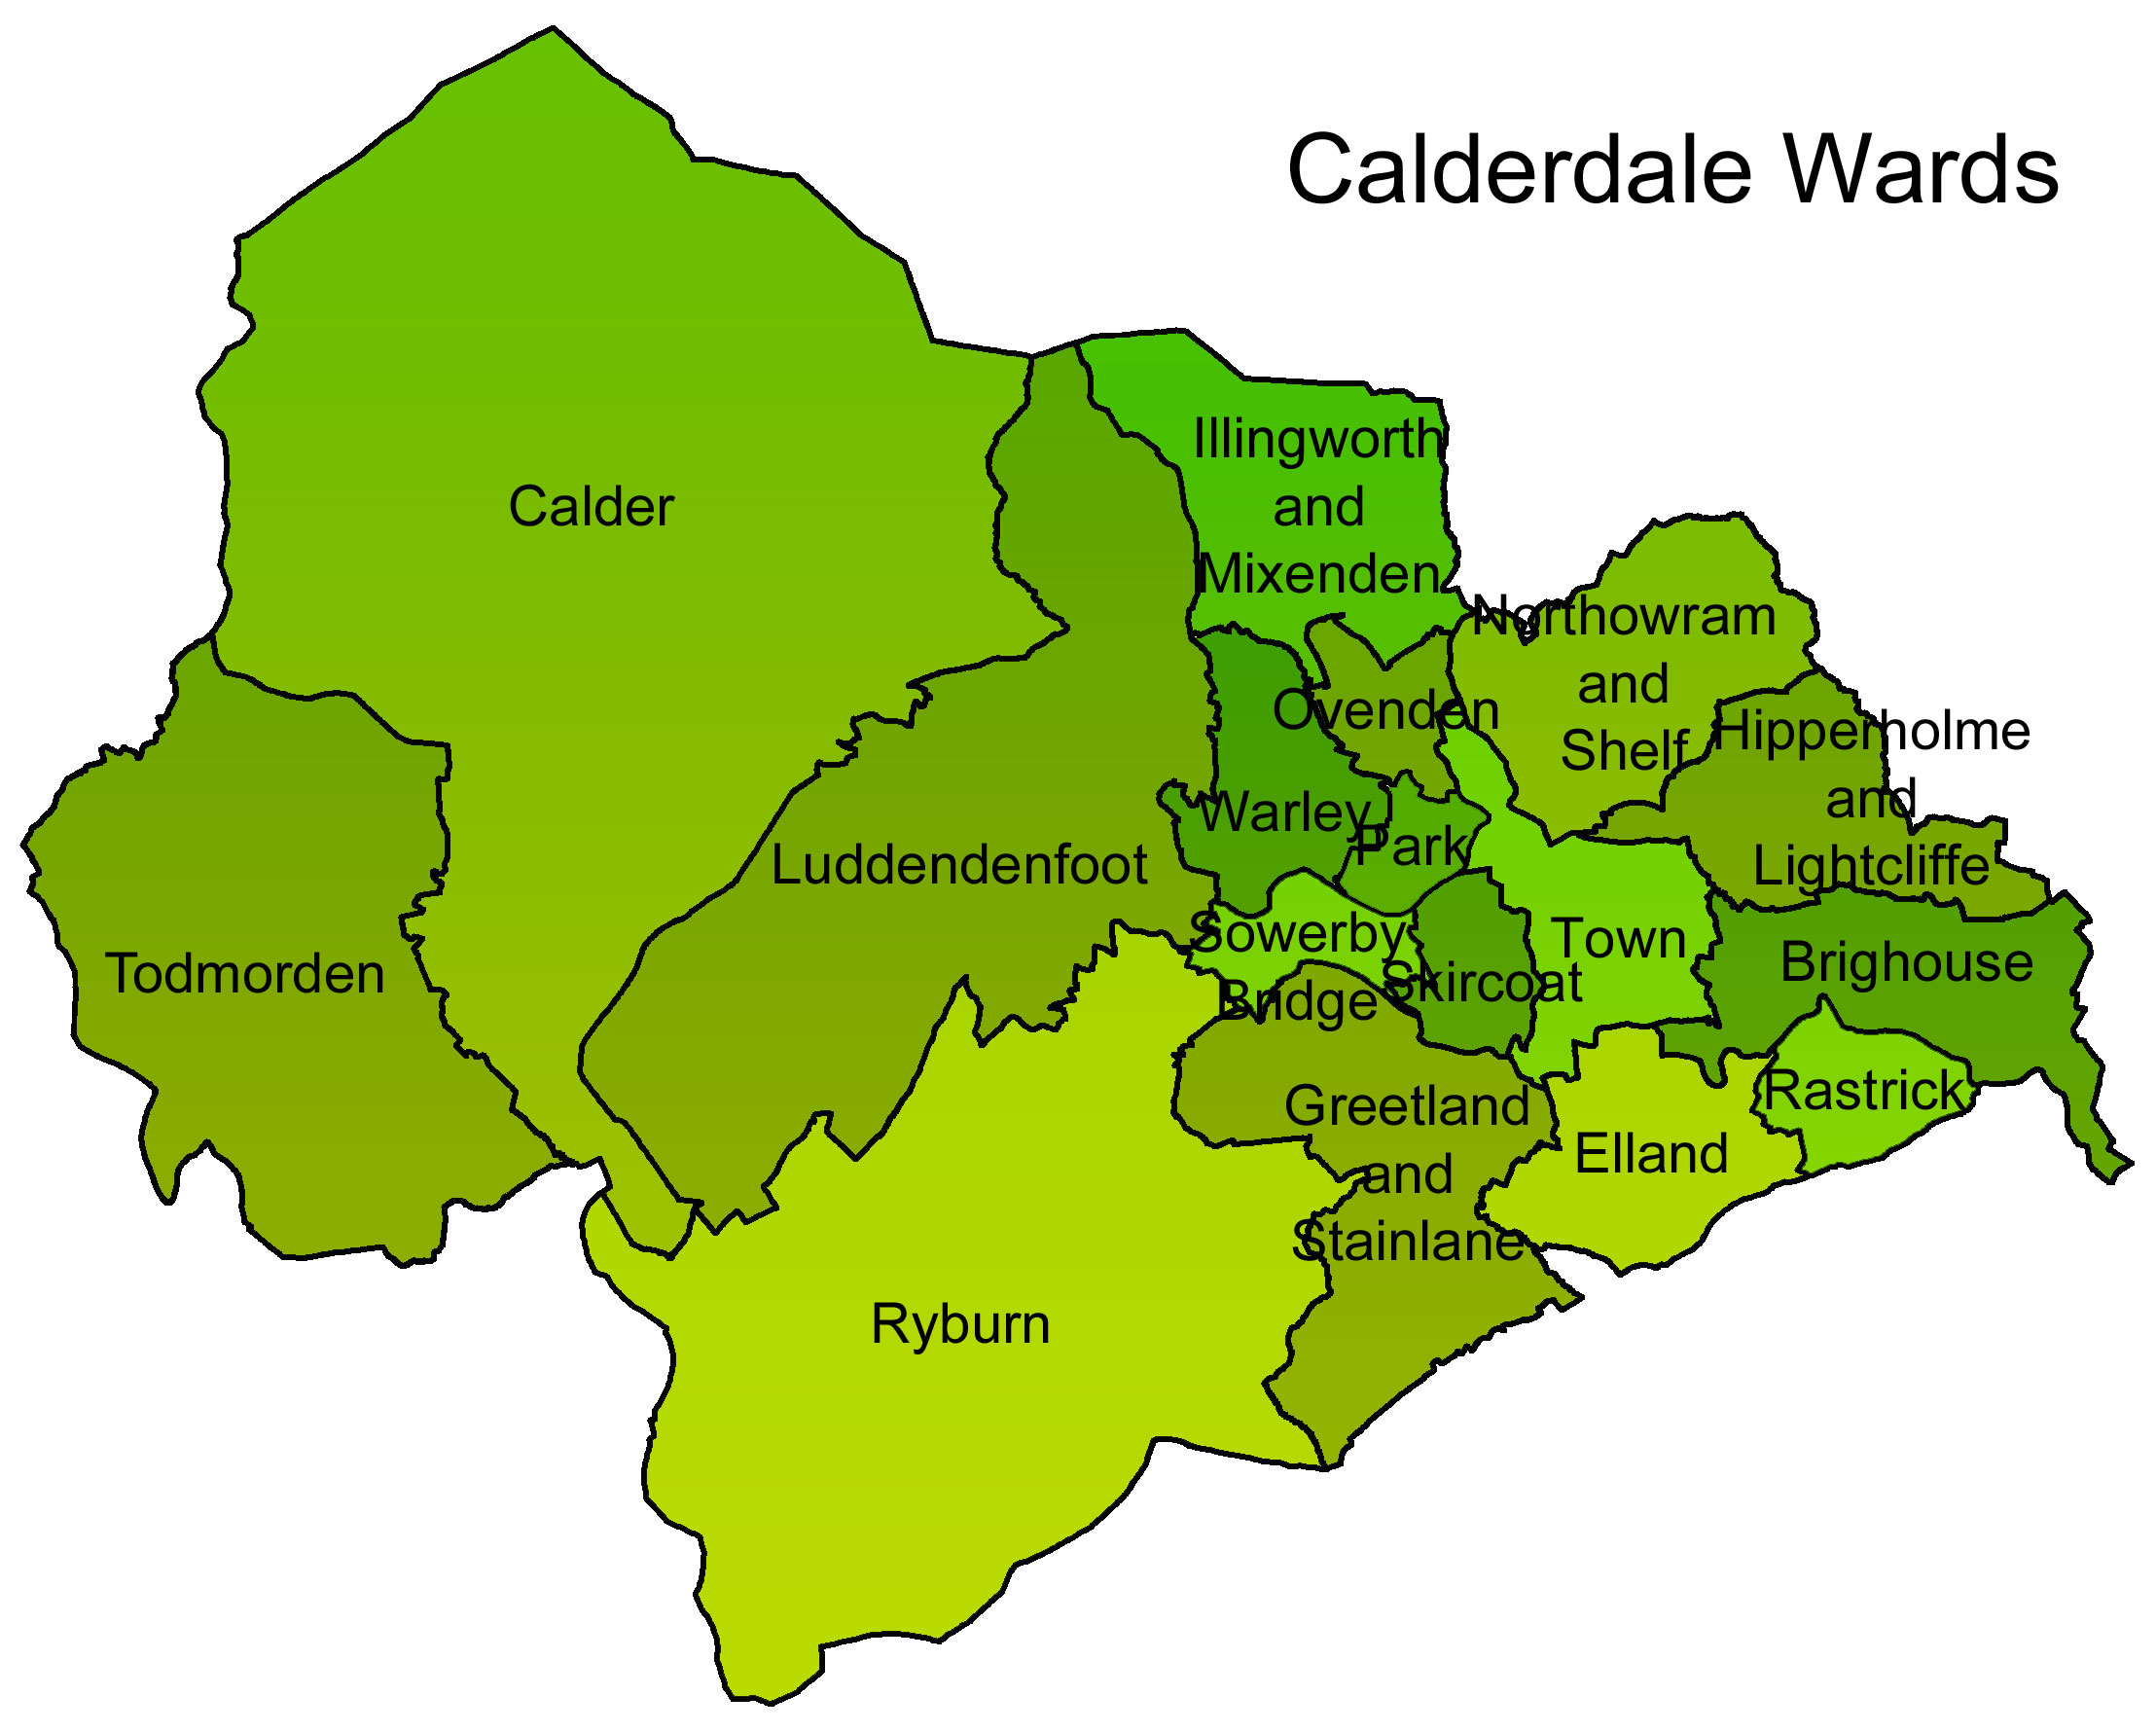 Map of Calderdale wards